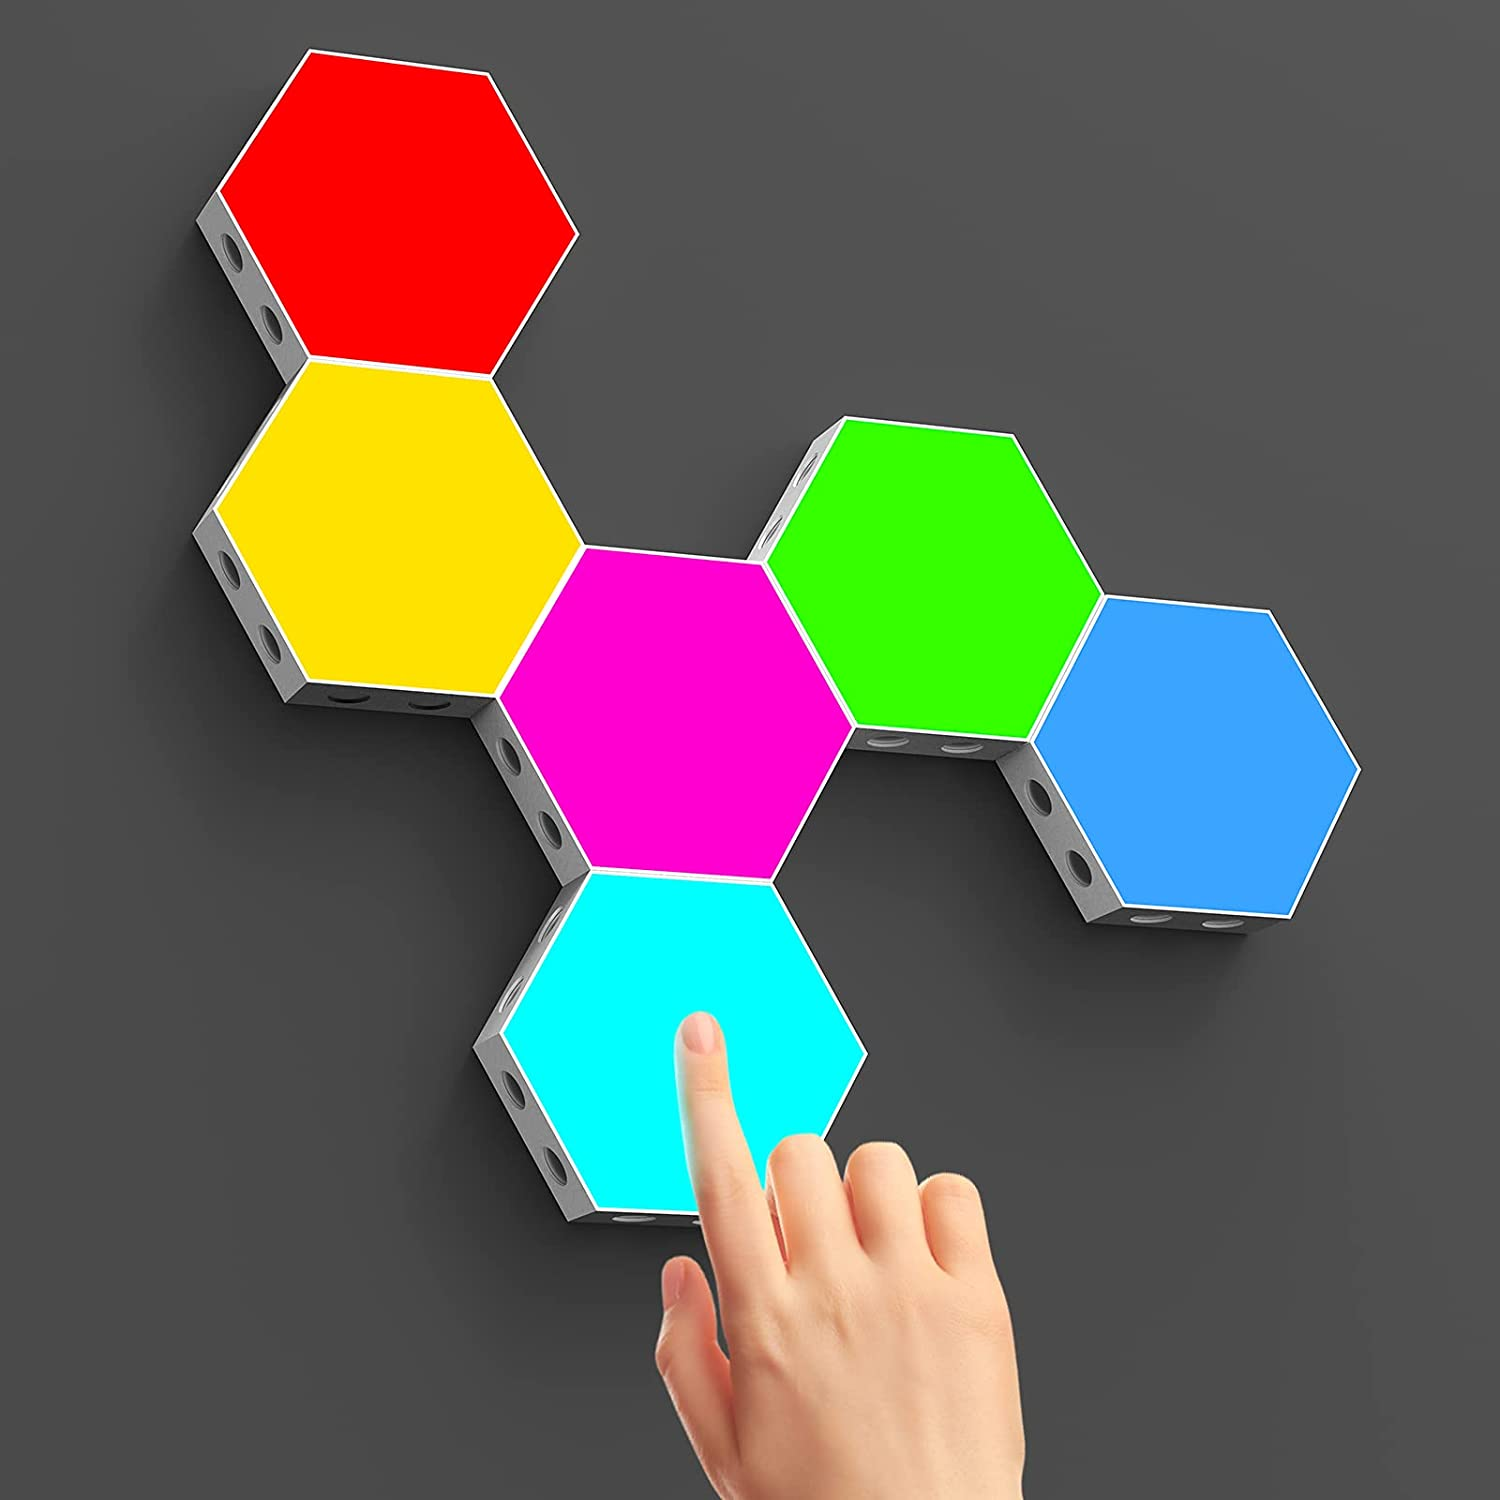 Hexagon Splicing Wall Light, UooEA Smart Wall-Mounted LED Light ,Panels Touch-Sensitive DIY Night Light ,Modular RGB Led Colorful lamp with USB-Power for Decoration, Bedroom, Living Room(6 Pack)